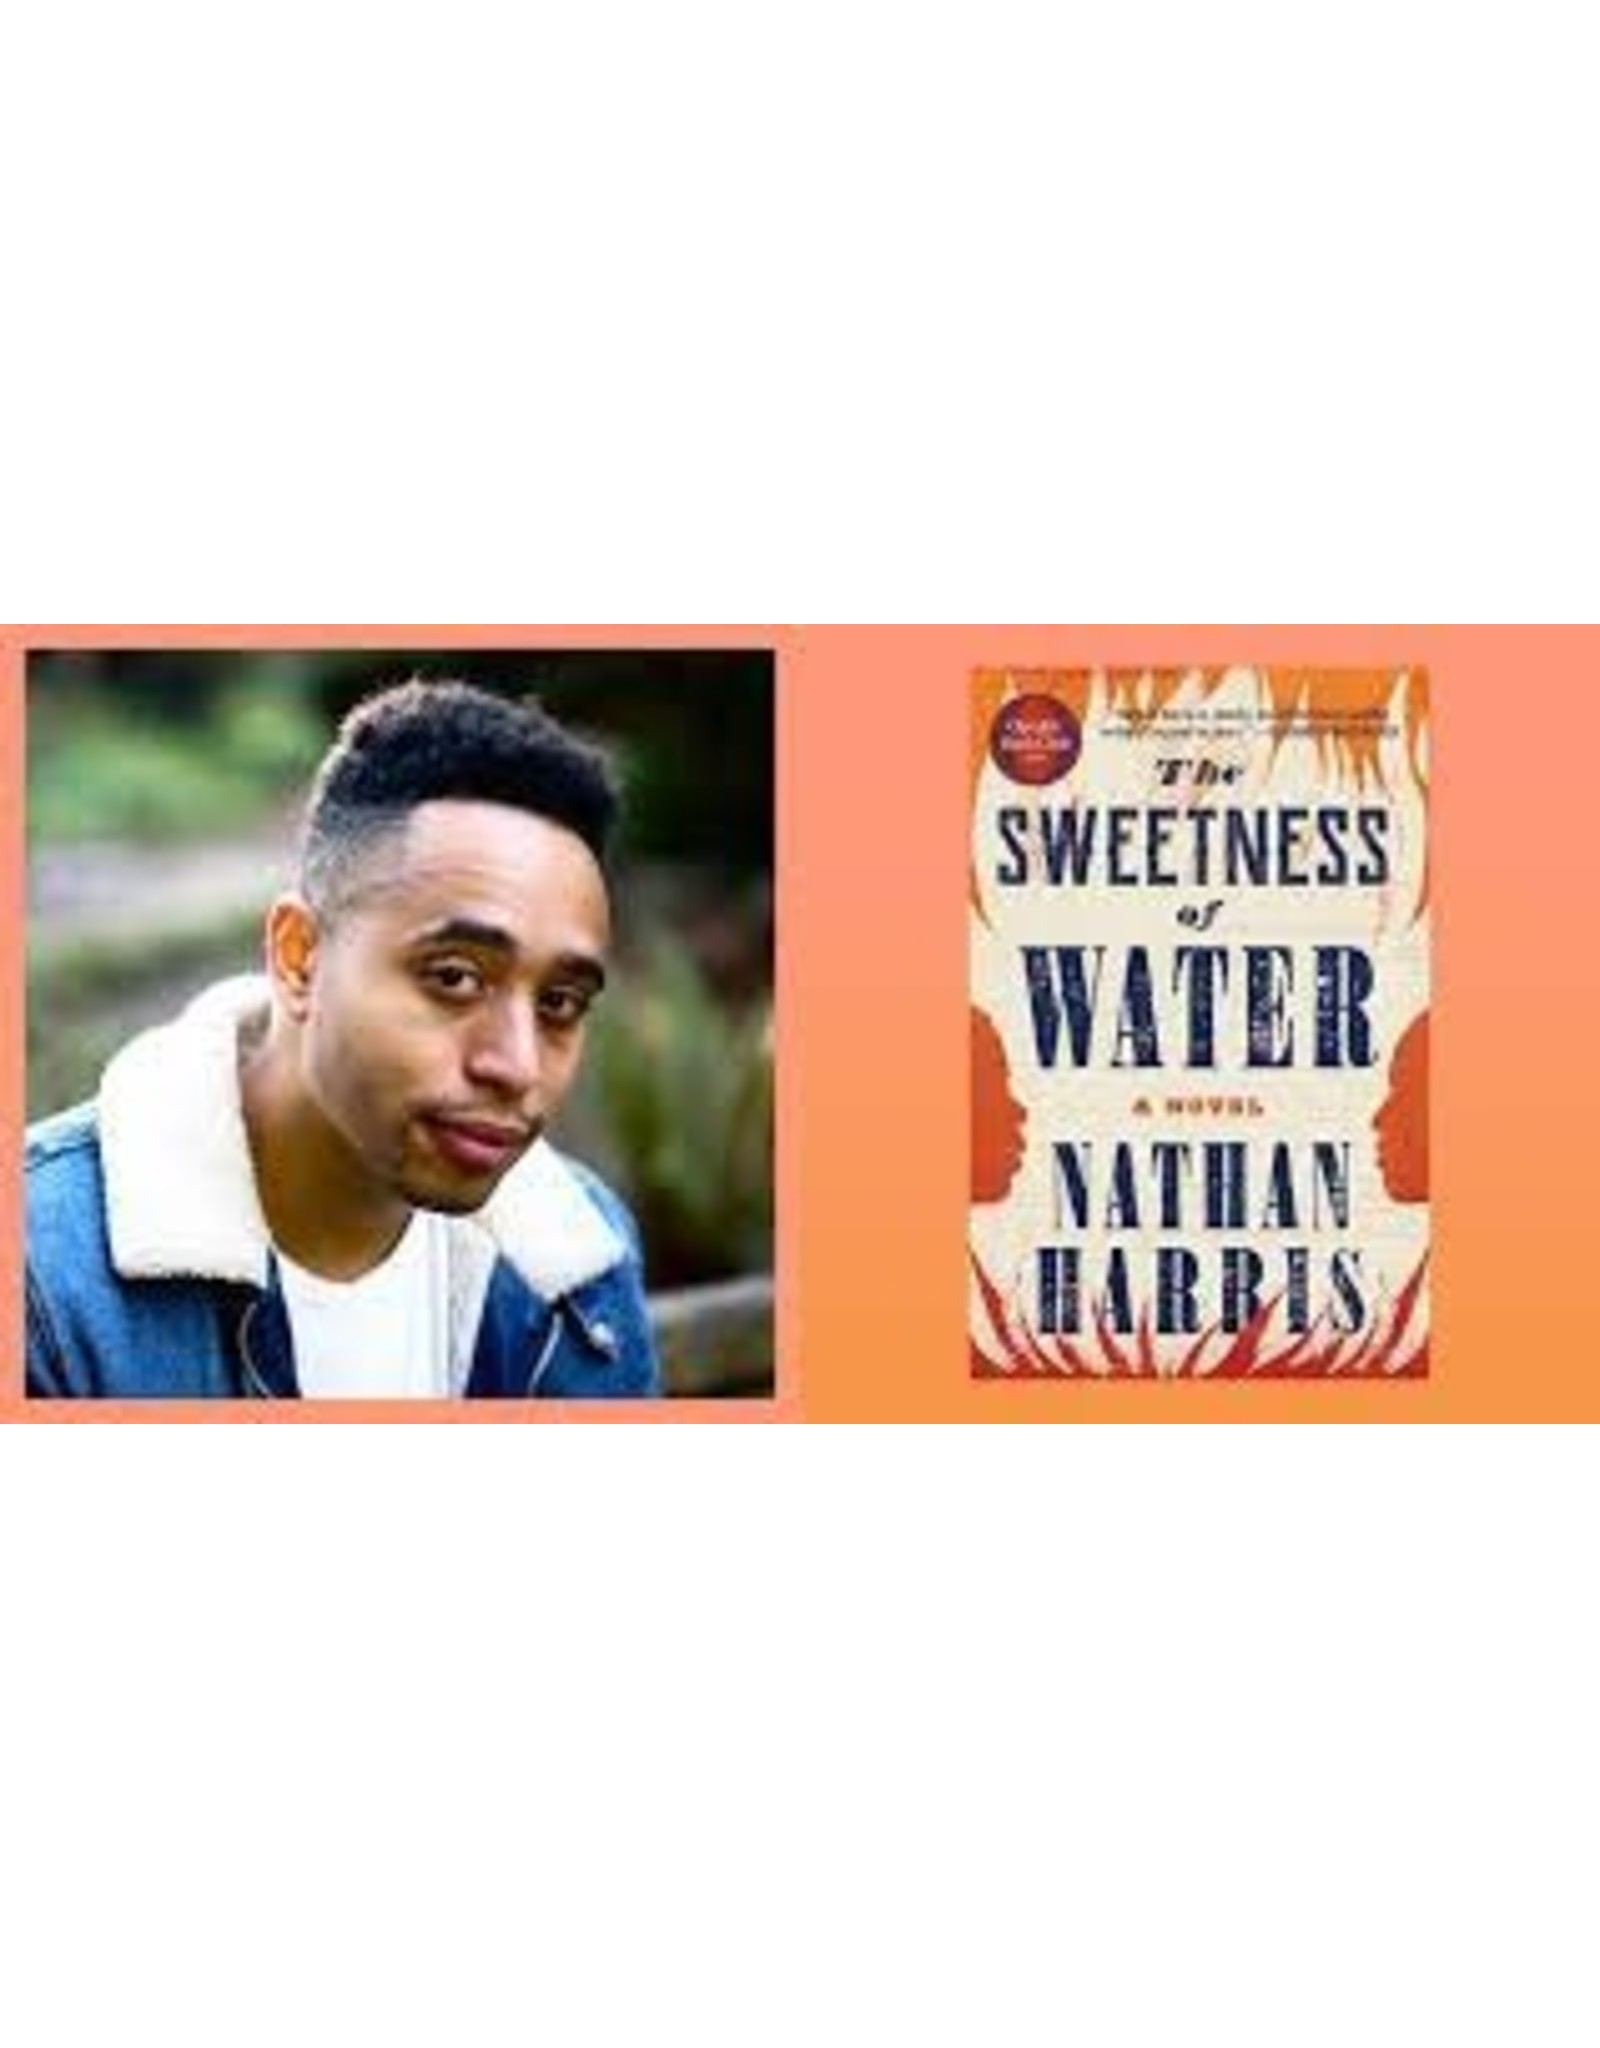 Books The Sweetness of Water: A Novel by Nathan Harris